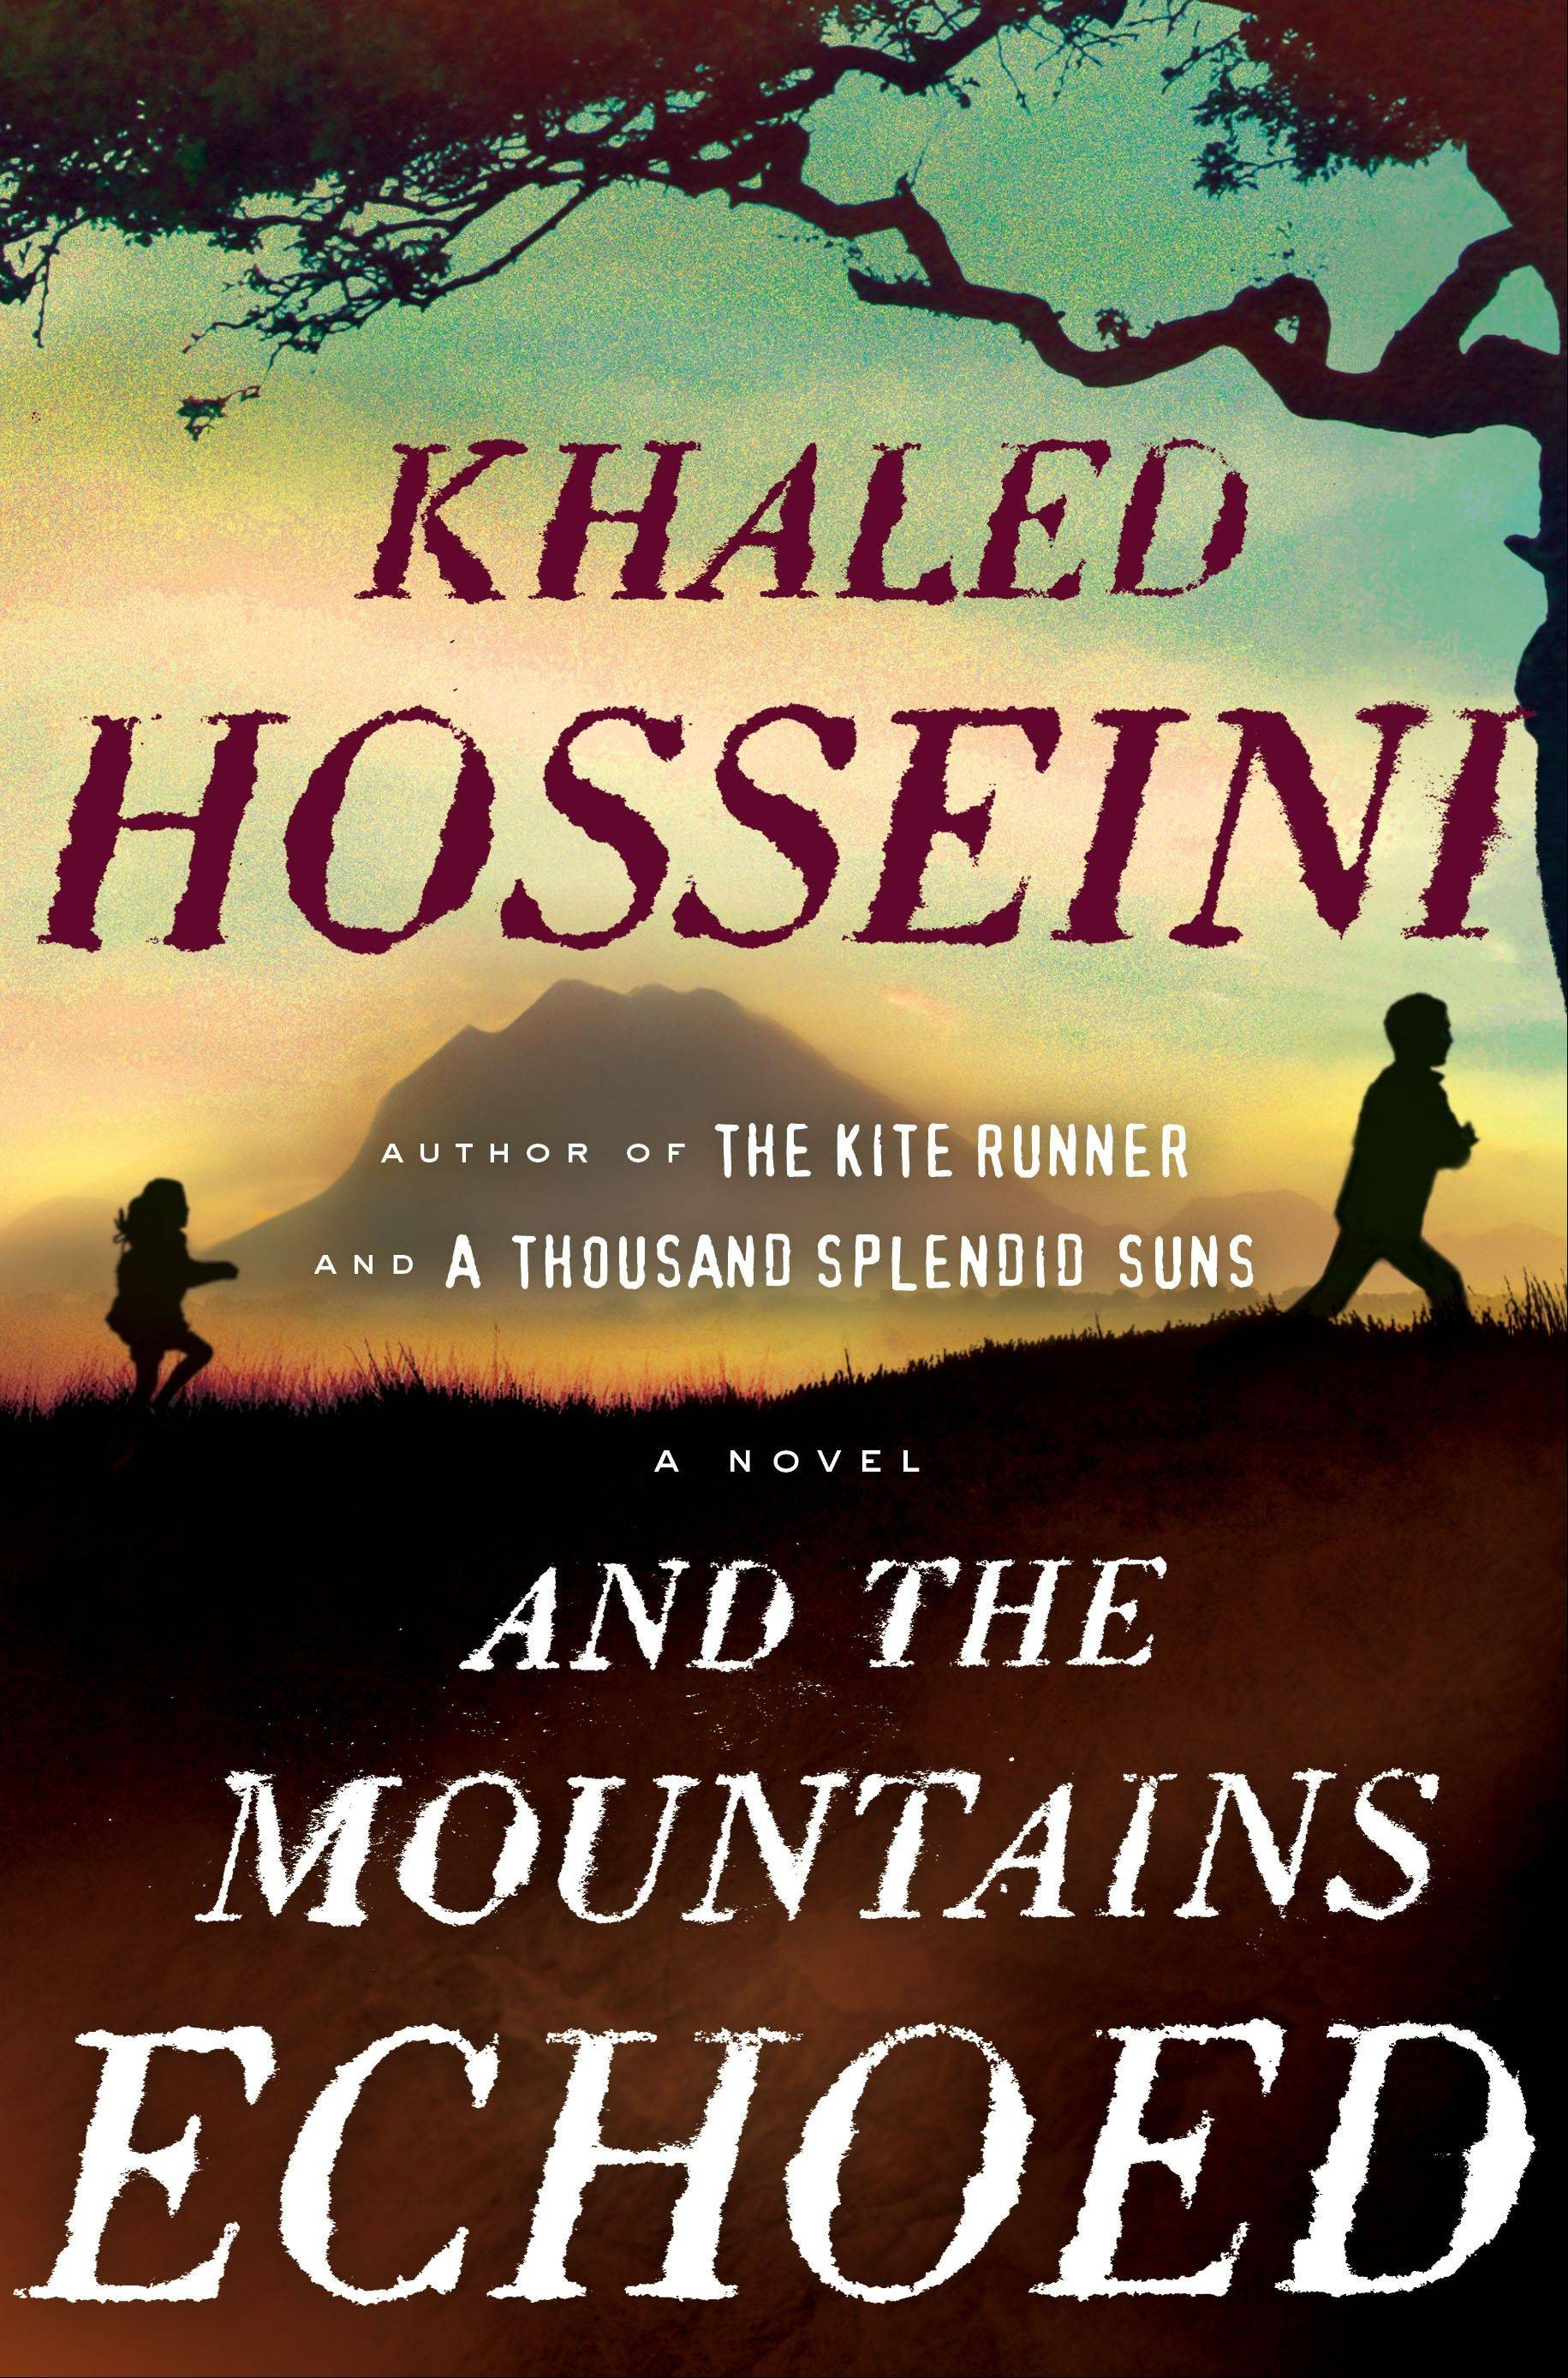 �And the Mountains Echoed� by Khaled Hosseini